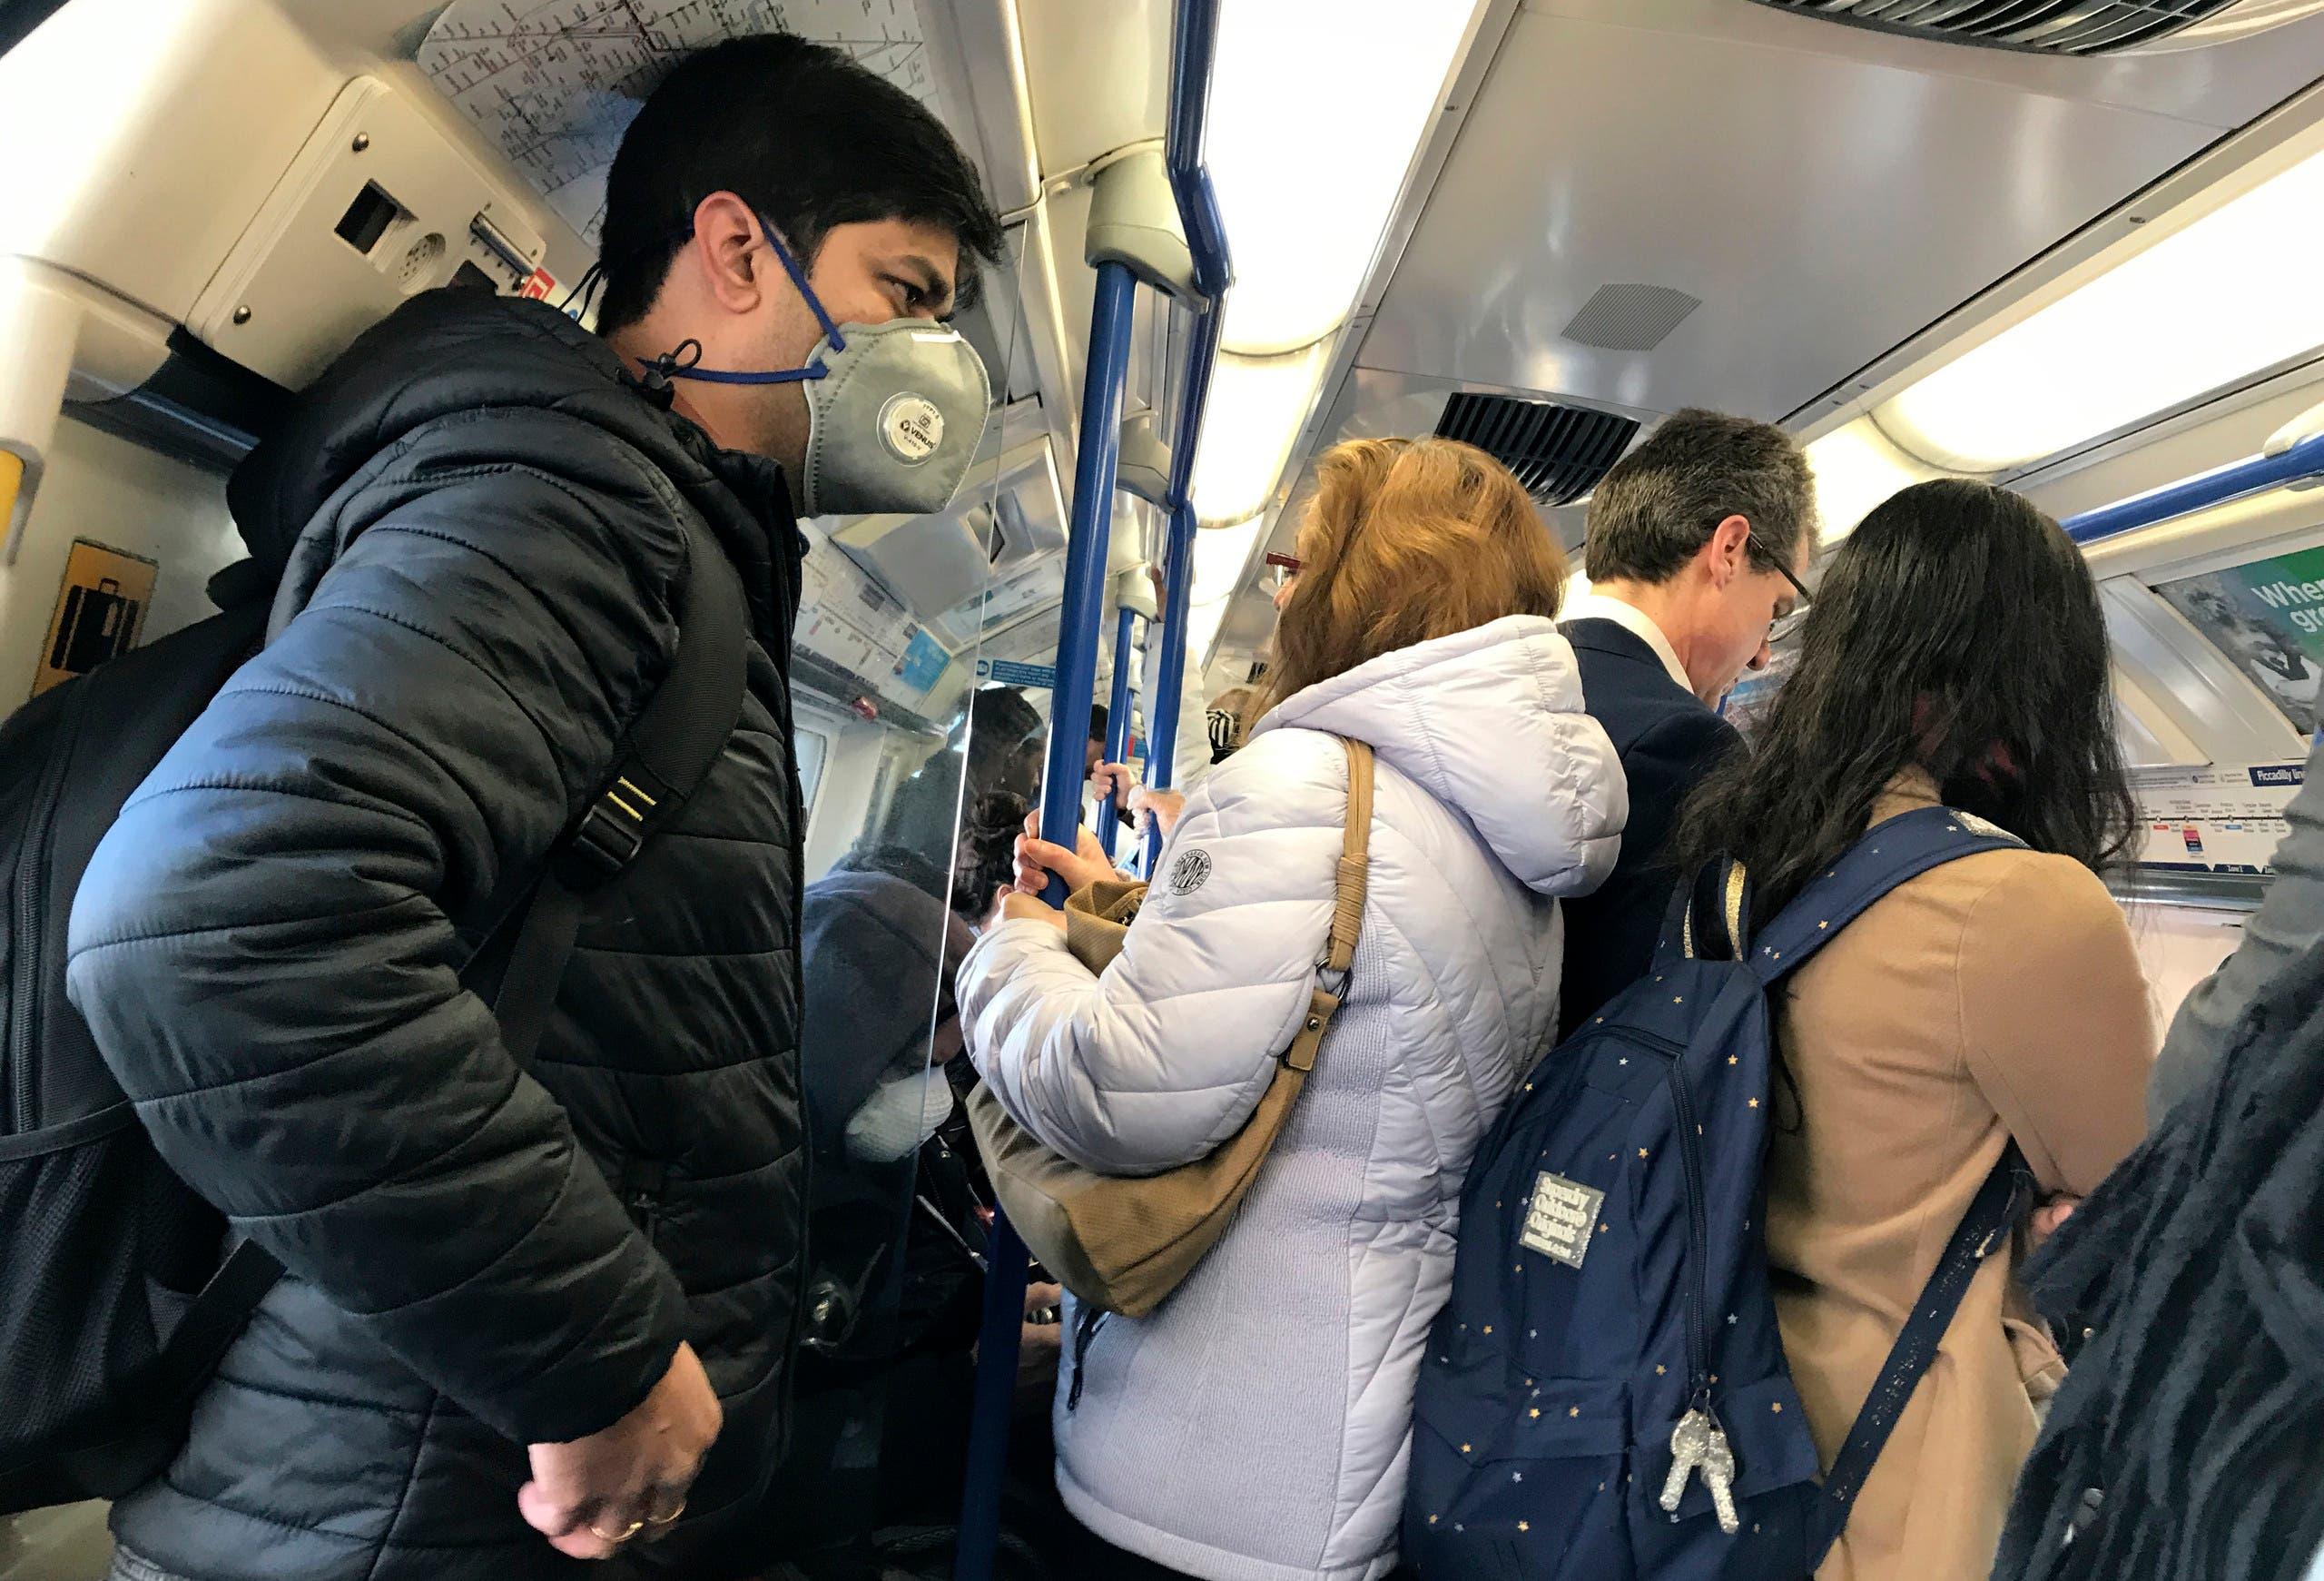 A traveler wears a mask on a busy tube in London on March 16, 2020. (AP)